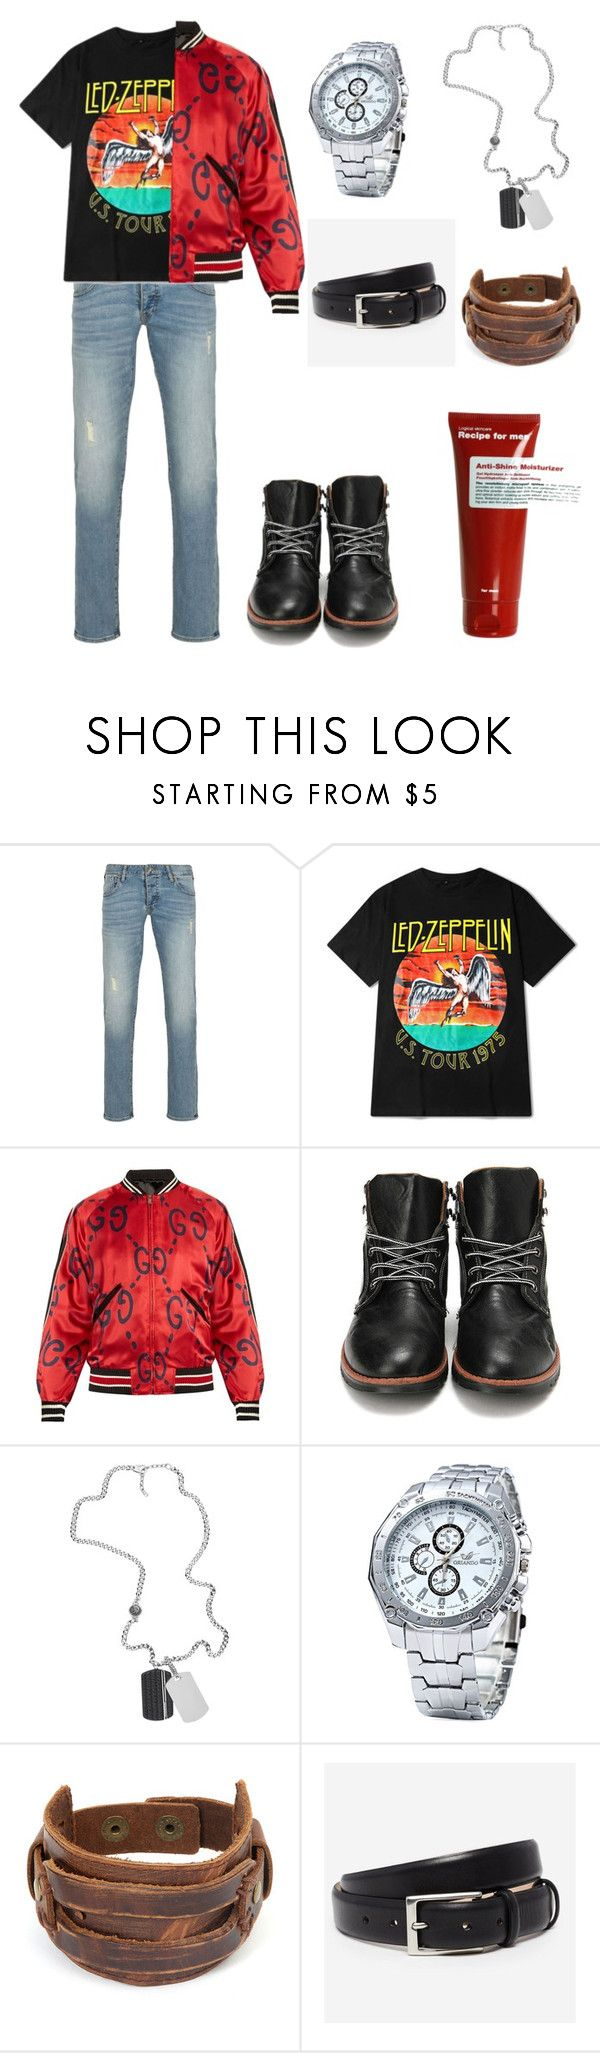 """""""Sandman"""" by slowsilence20 ❤ liked on Polyvore featuring Armani Jeans, Gucci, Diesel, West Coast Jewelry, Bonobos, Recipe For Men, men's fashion and menswear"""